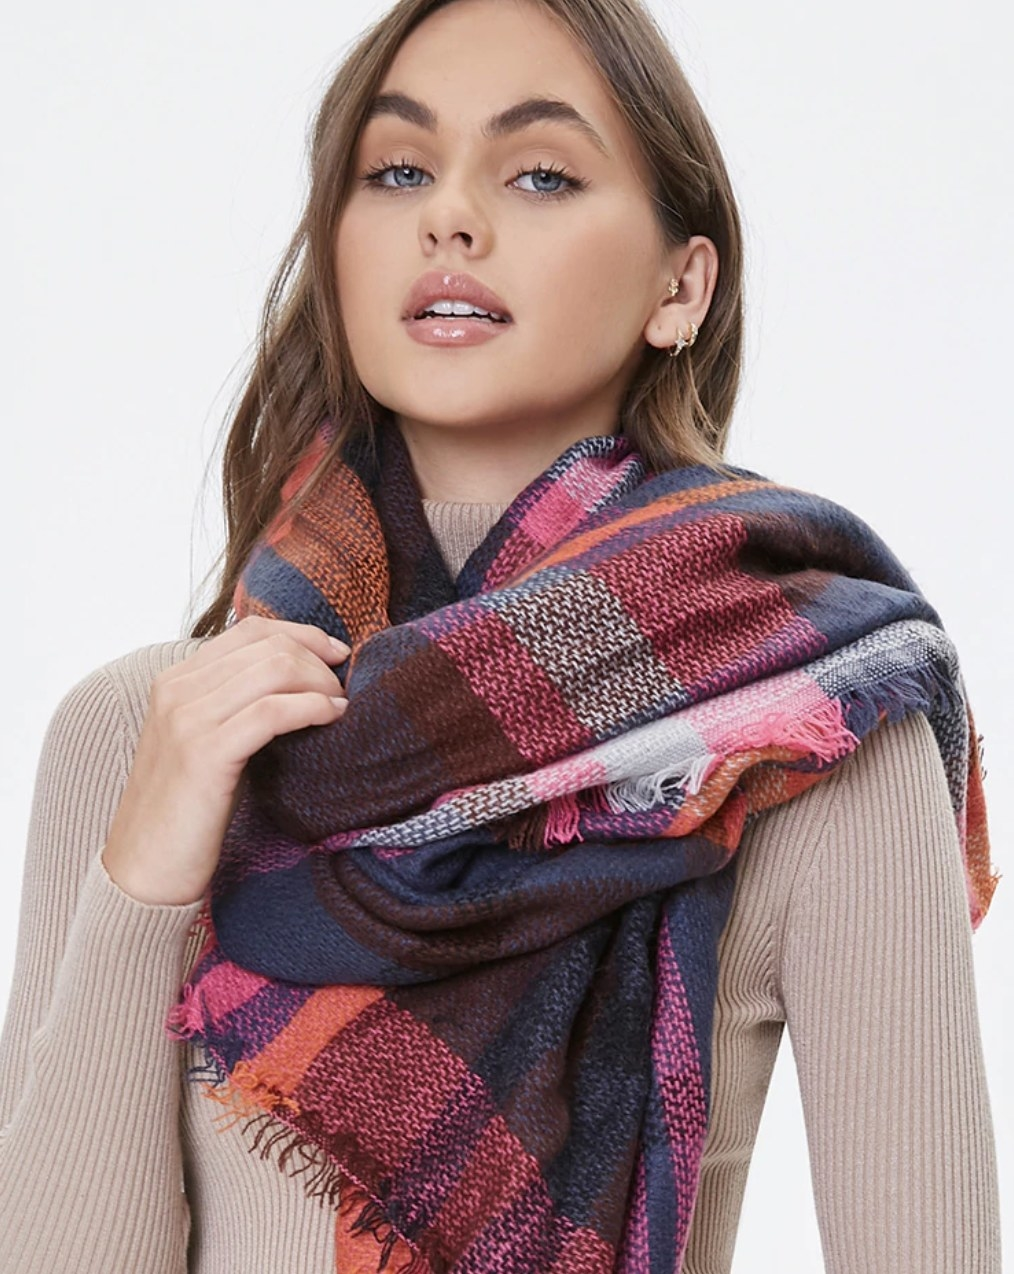 Model is wearing a plaid infinity scarf over a mauve turtleneck sweater